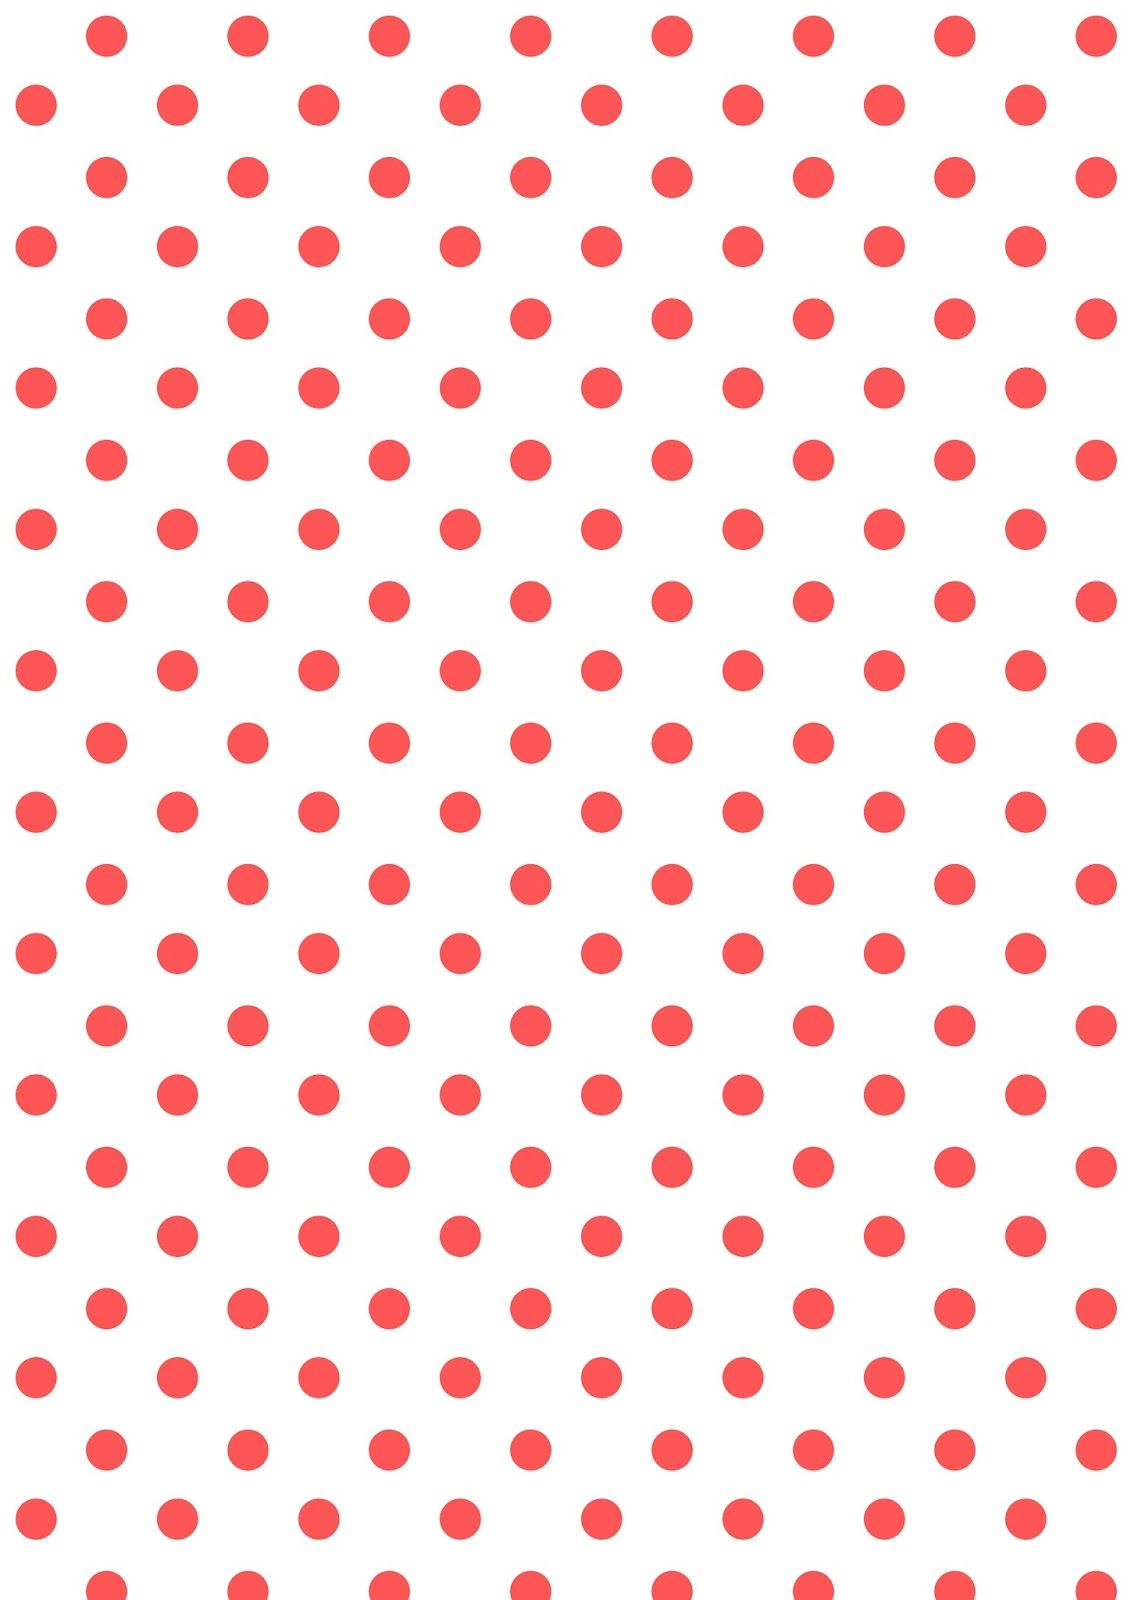 Red And White Polka Dot Background : white, polka, background, Digital, Polka, Scrapbooking, Paper:, Red-and-white, Pünktchenmuster, Freebie, Christmas, Scrapbook, Paper,, Wallpaper,, Printable, Paper